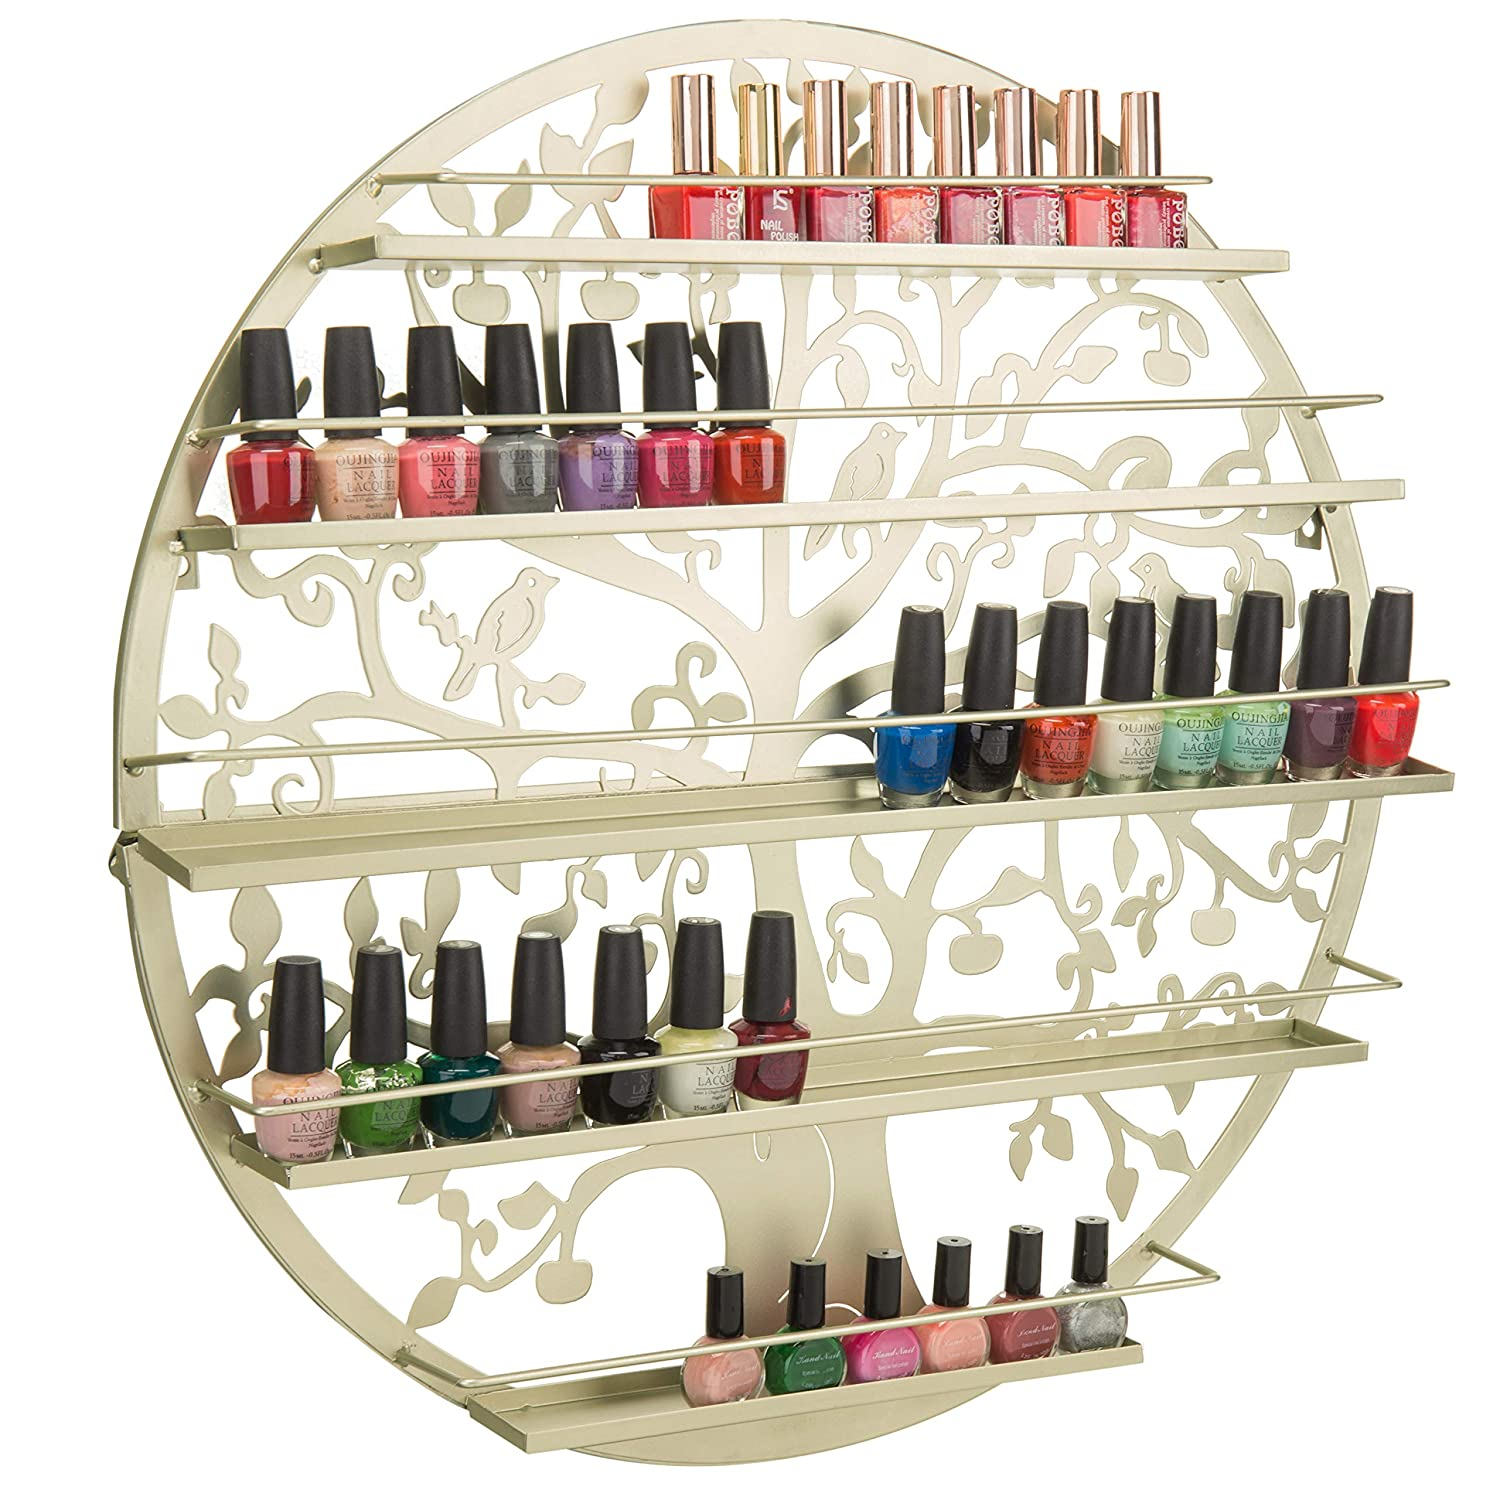 MyGift Wall-Mounted Brass-Tone Metal Tree Silhouette 5-Tier Nail Polish Rack Essential Oil Holder